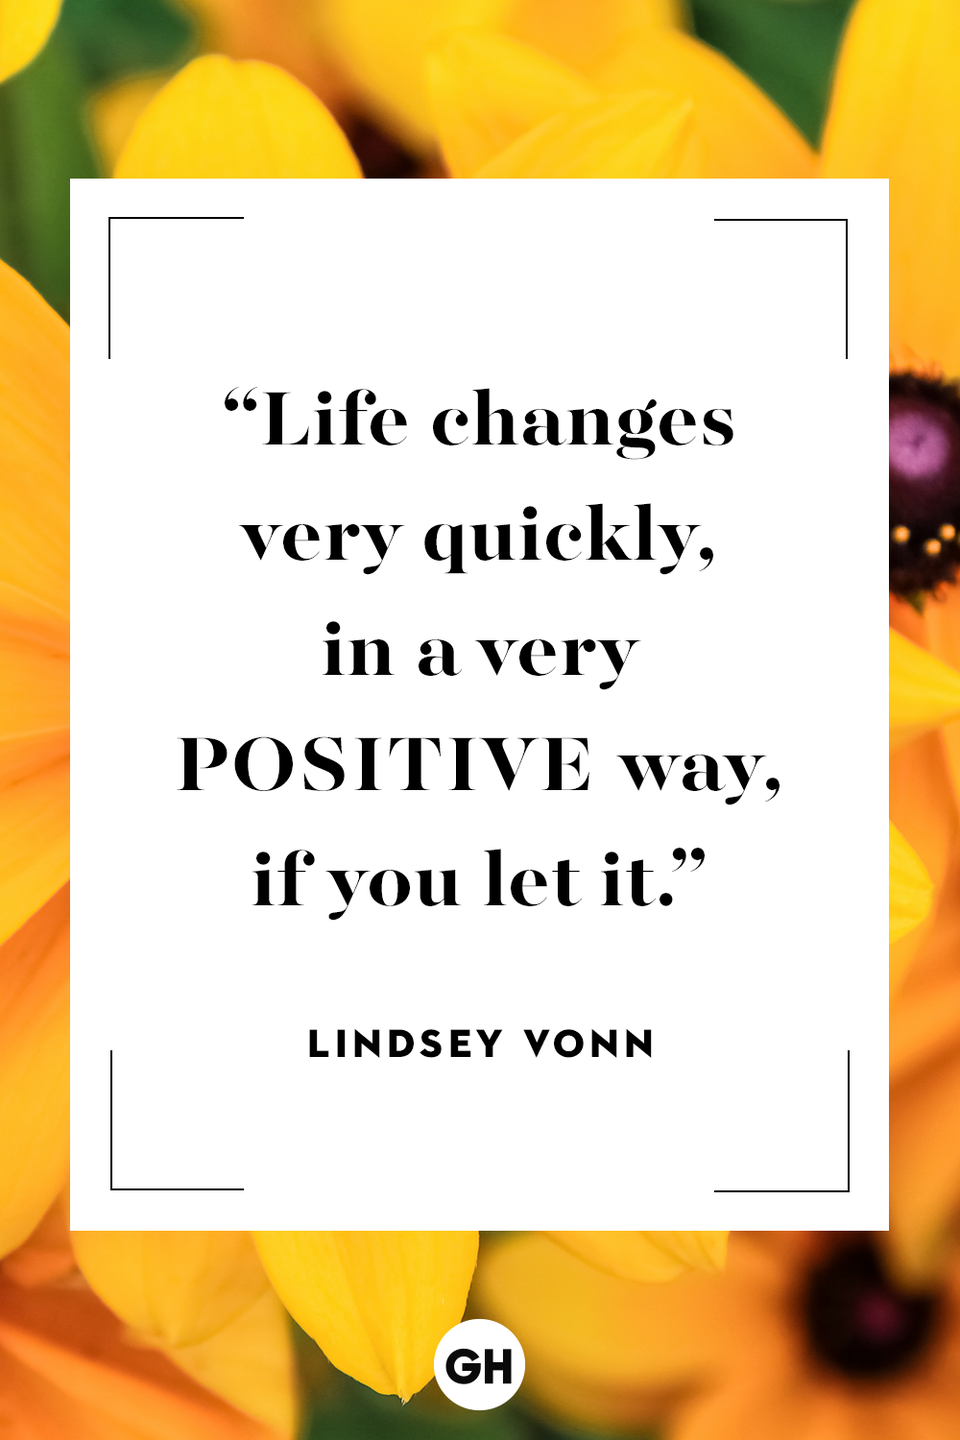 <p>Life changes very quickly, in a very positive way, if you let it.</p>